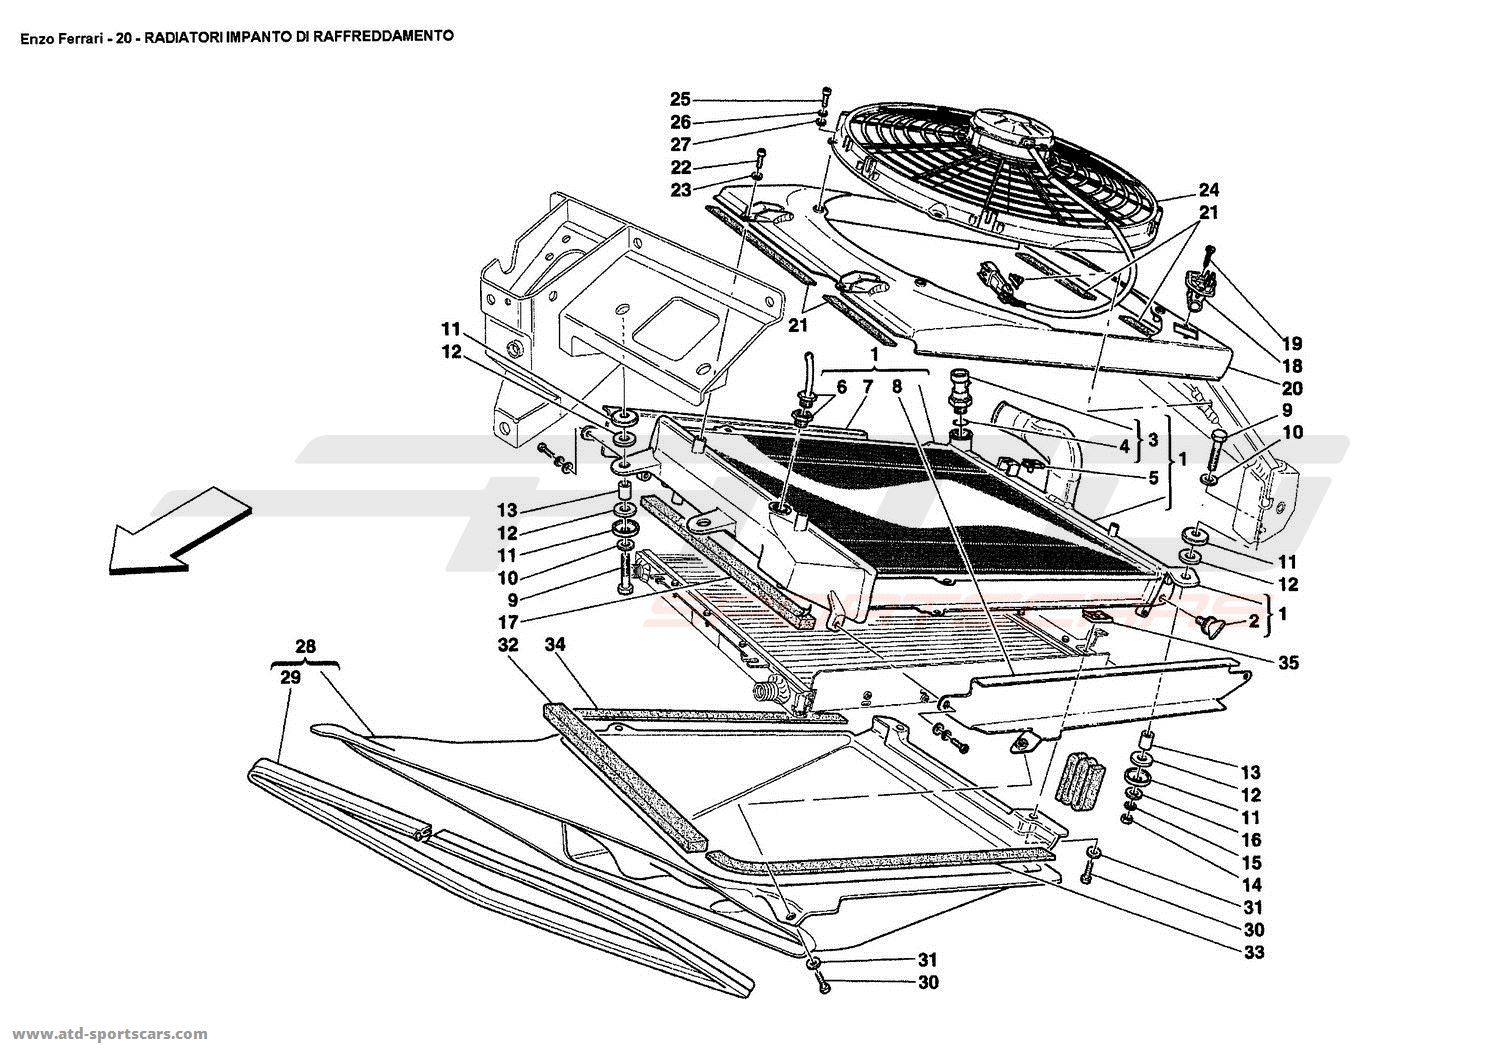 Ferrari Enzo COOLING SYSTEM RADIATORS parts at ATD